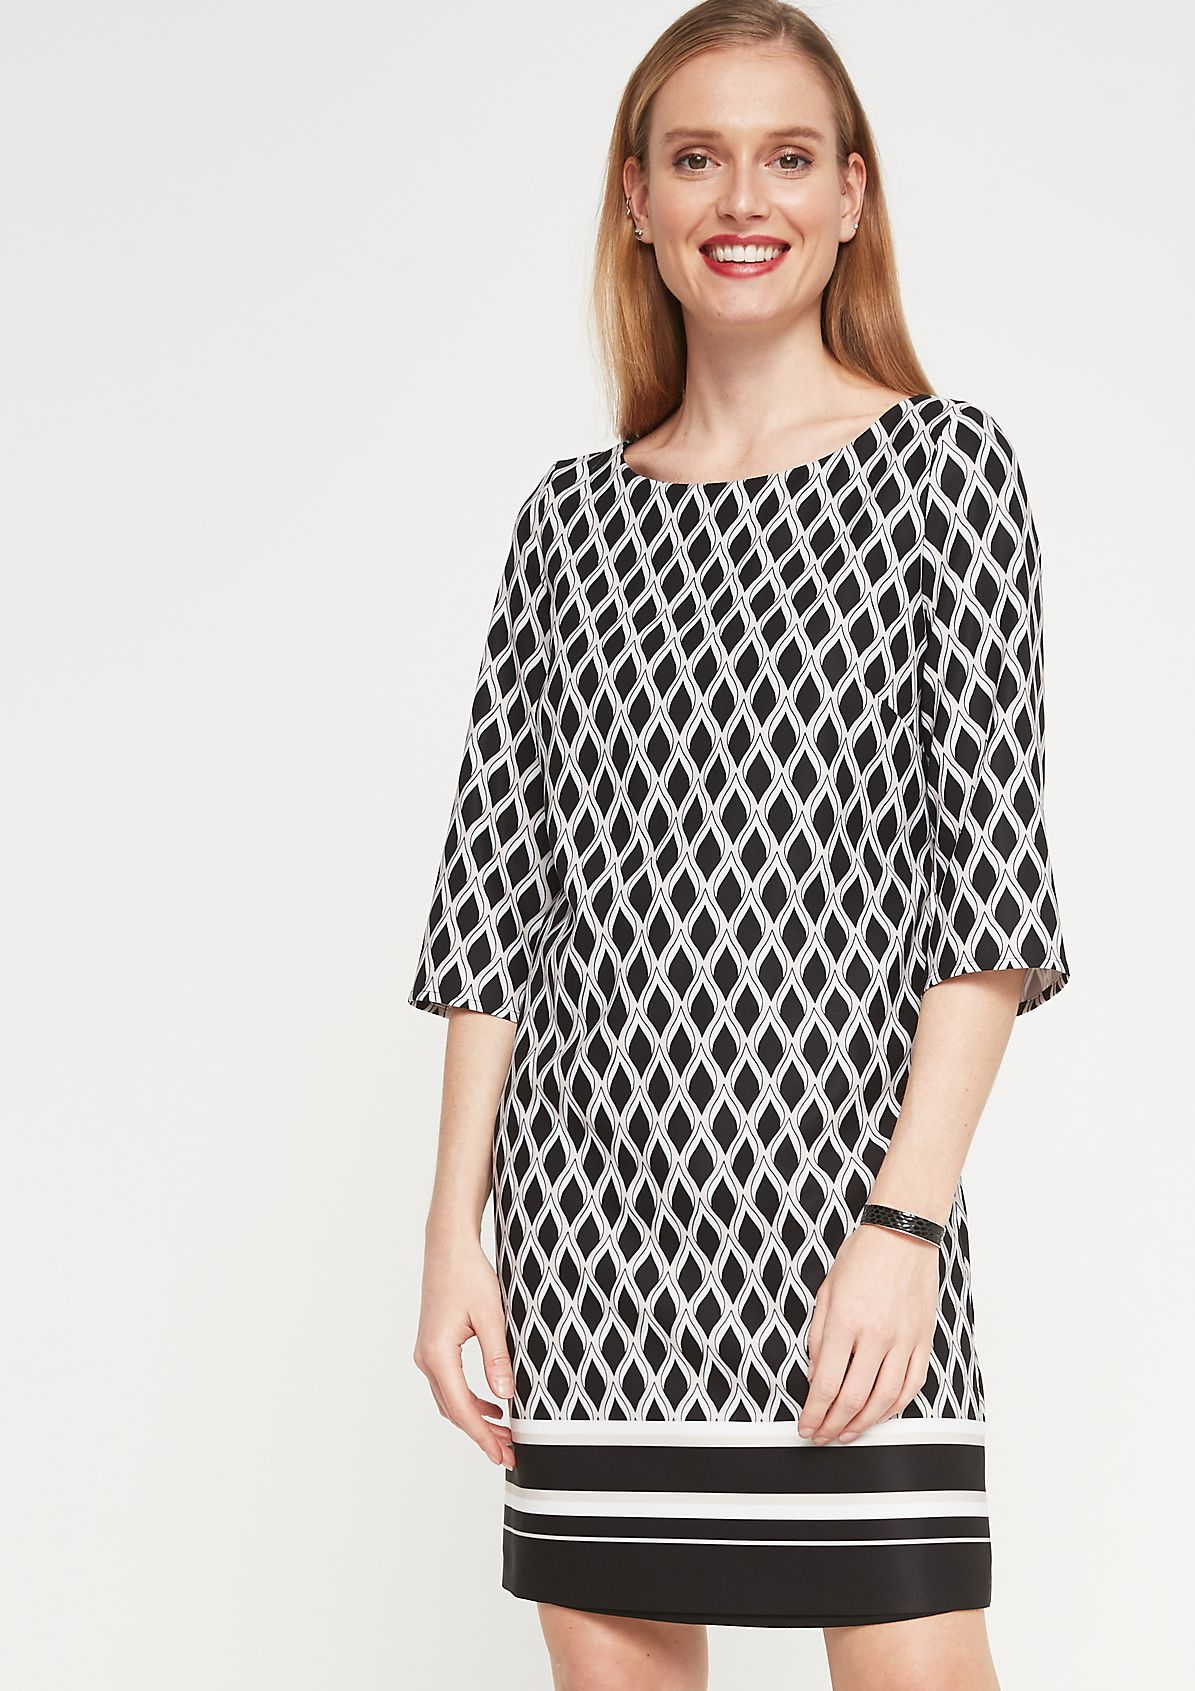 Satin dress with 3/4-length sleeves and a smart geometric pattern from comma